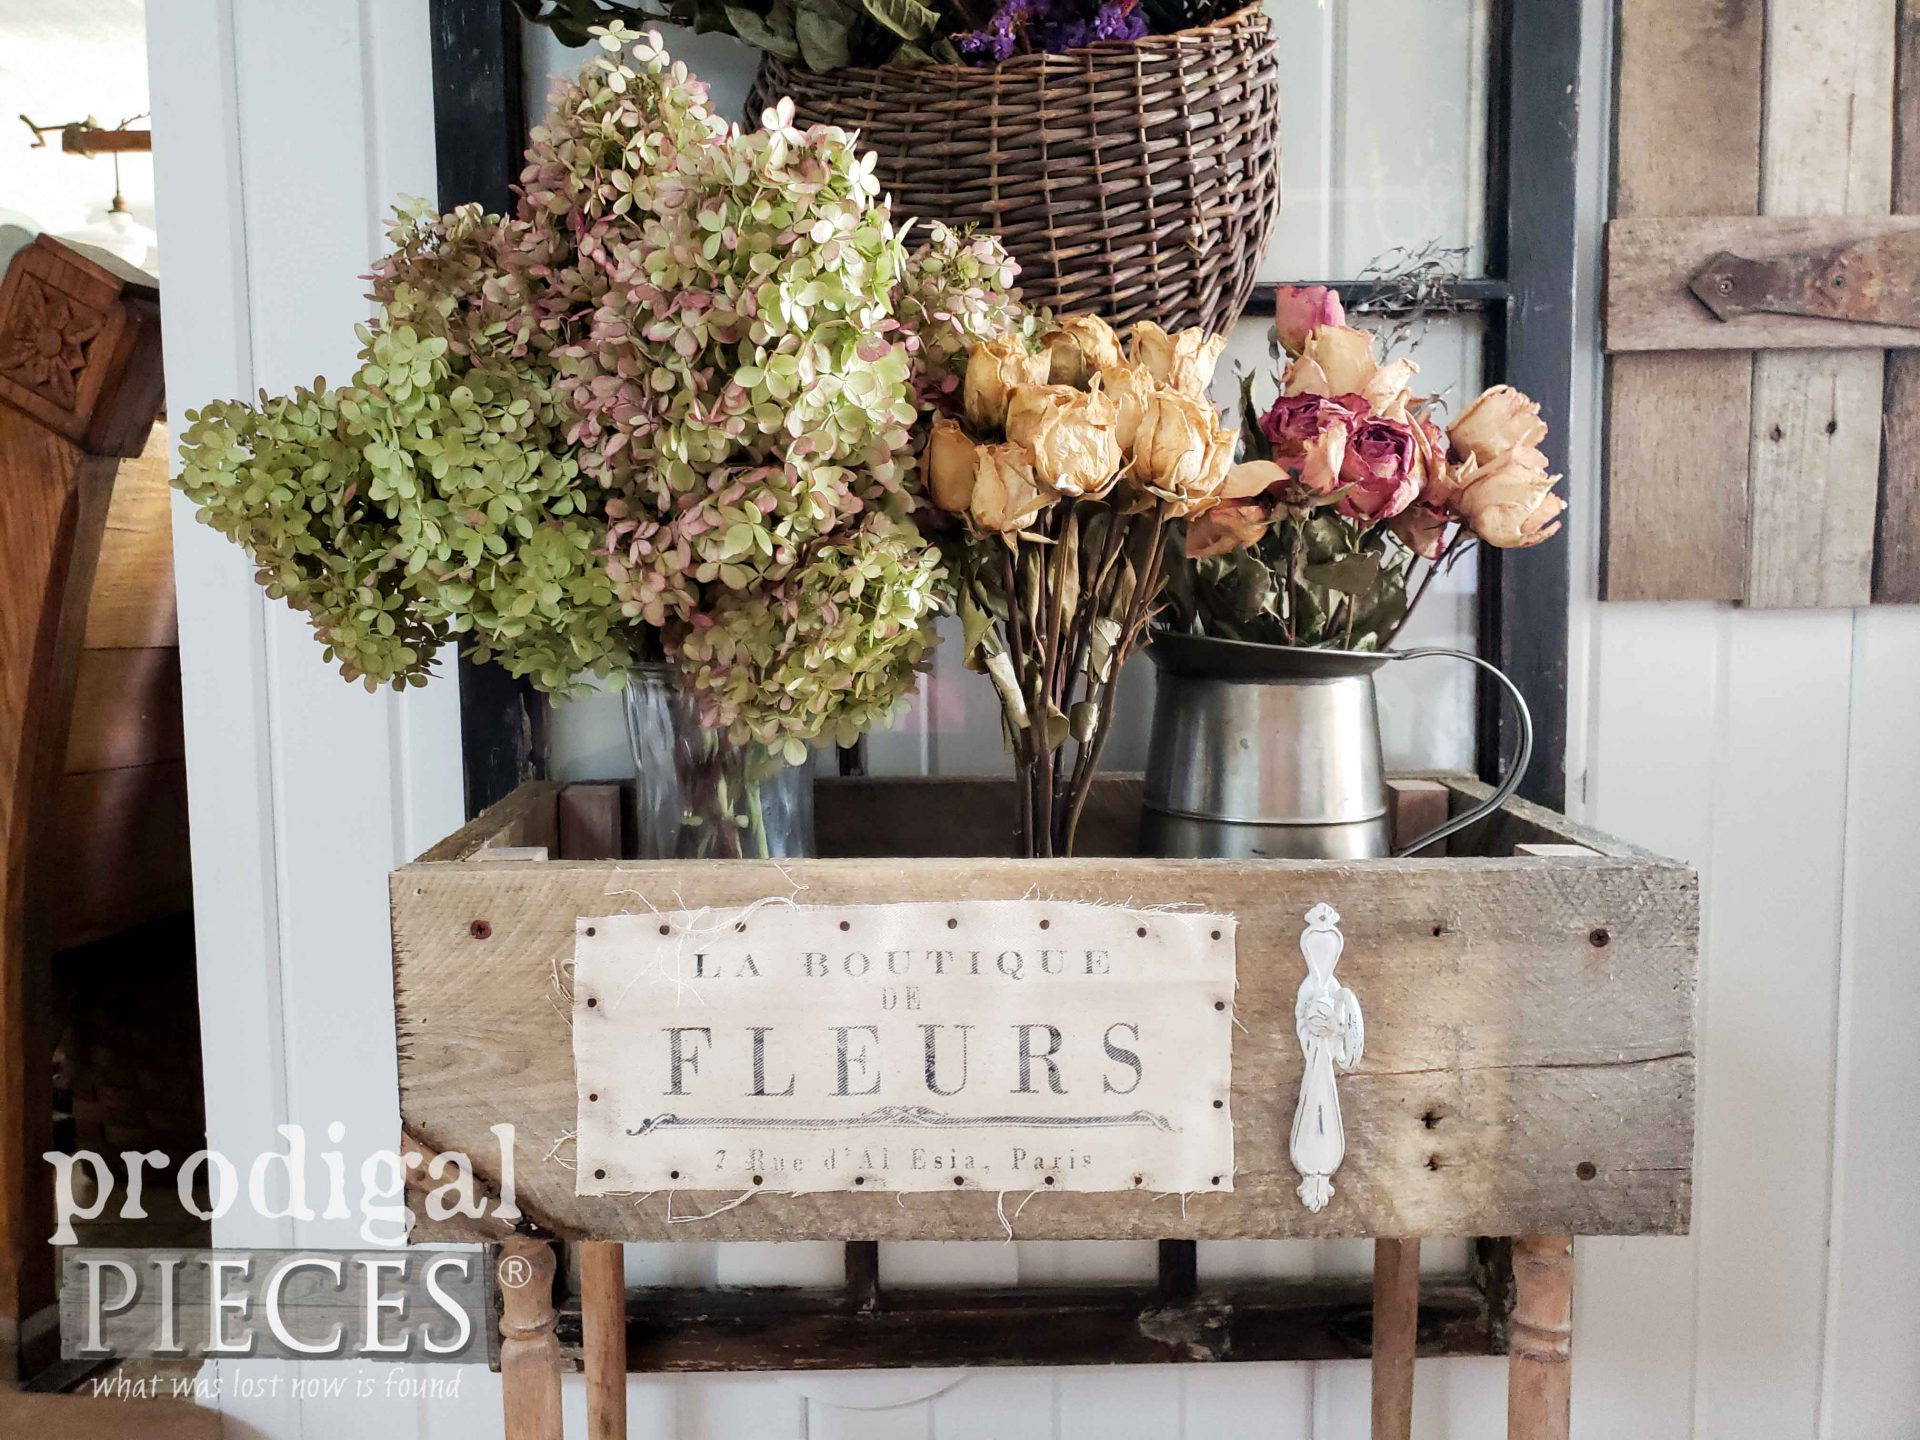 French Fleur Crate Table for Farmhouse Decor created by Larissa of Prodigal Pieces | prodigalpieces.com #prodigalpieces #home #farmhouse #flowers #homedecor